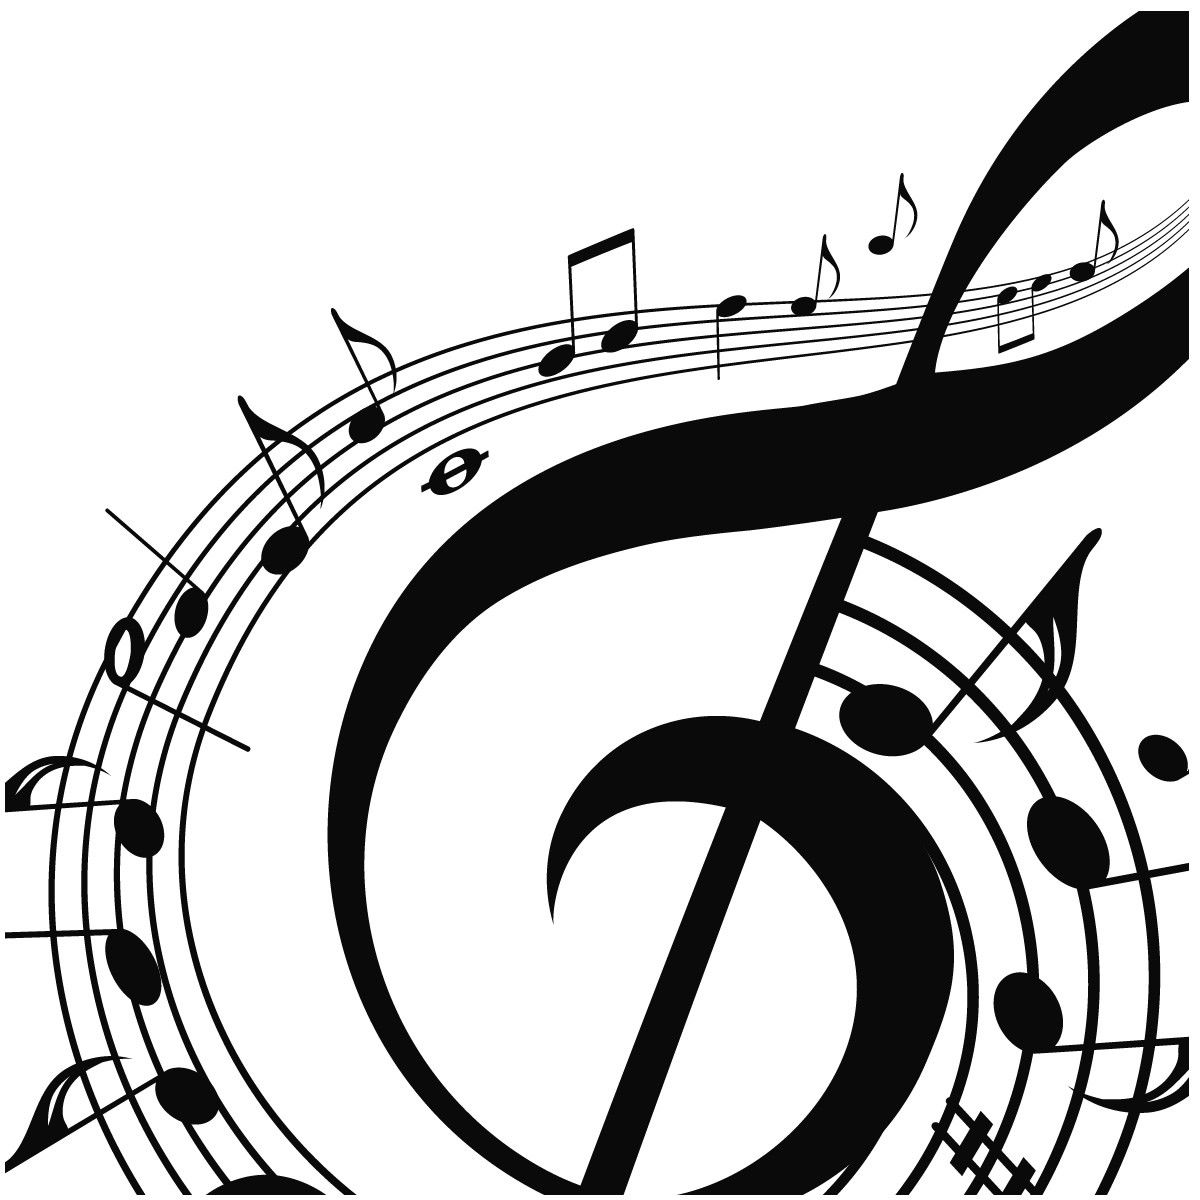 Musical notes silhouette musical notes swirling around a treble musical note wall sticker music wall decal art available in 5 sizes and 25 colours x large black biocorpaavc